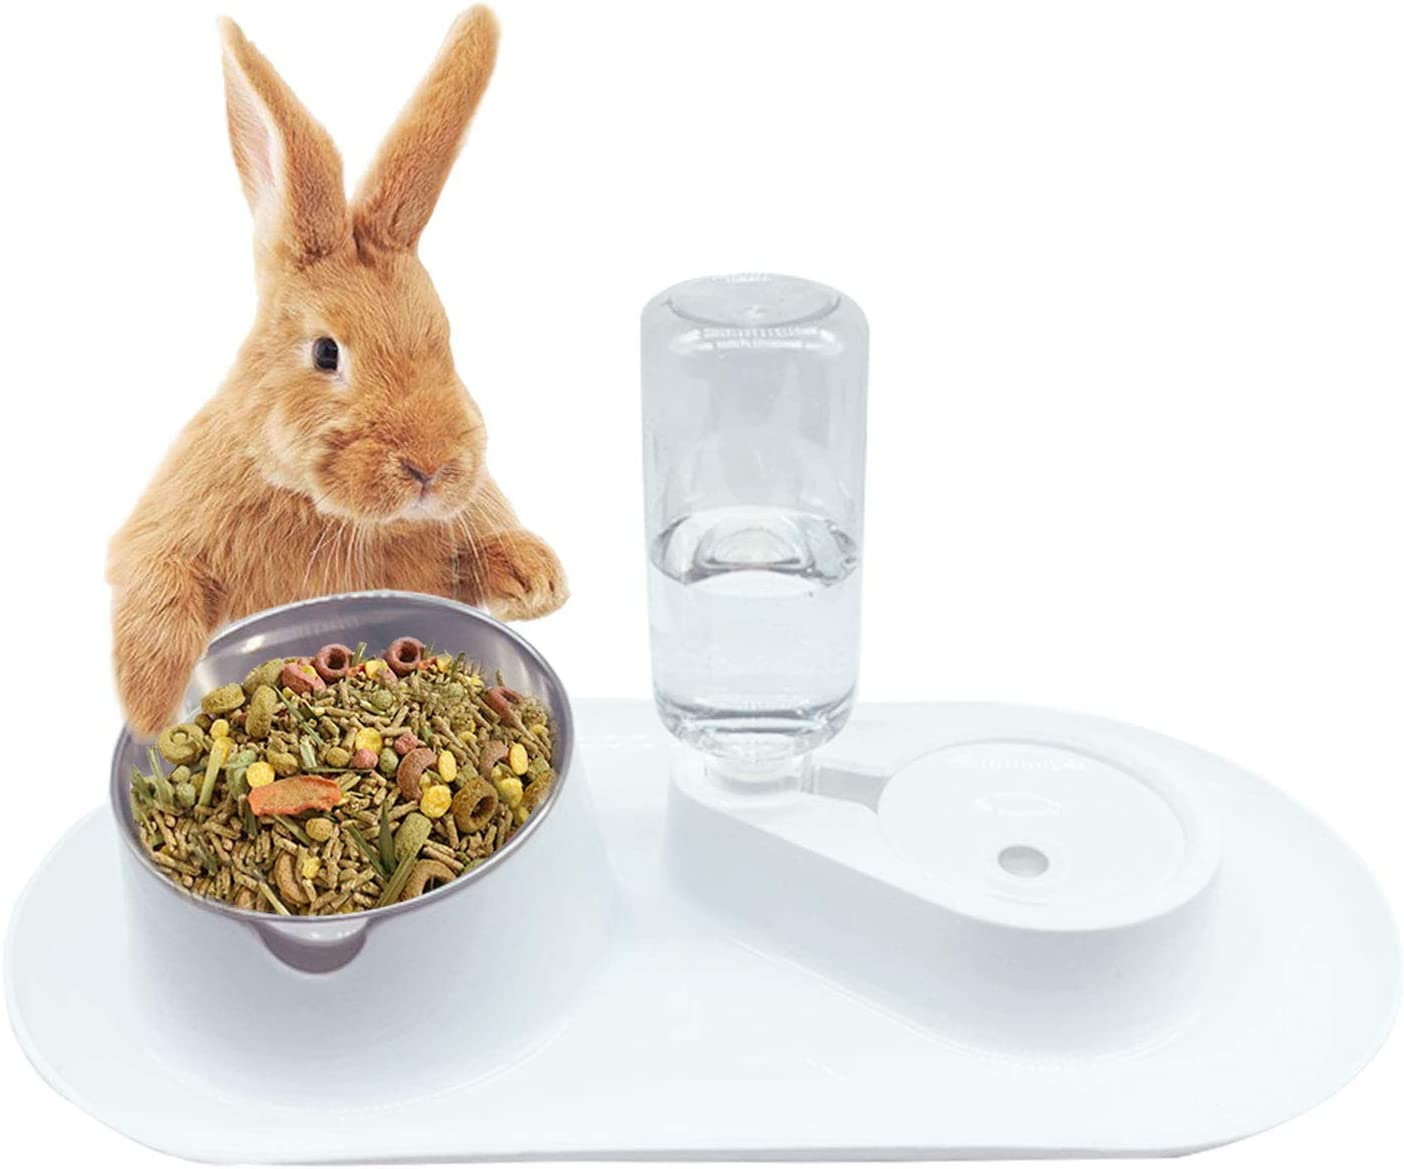 Tfwadmx Rabbit Double Bowls Bunny Automatic Water Dispenser Detachable Plastic Bottle Adjustable Titled Neck Protection Food Feeder for Chinchilla Cat Puppy Squirrel and Other Small Animals